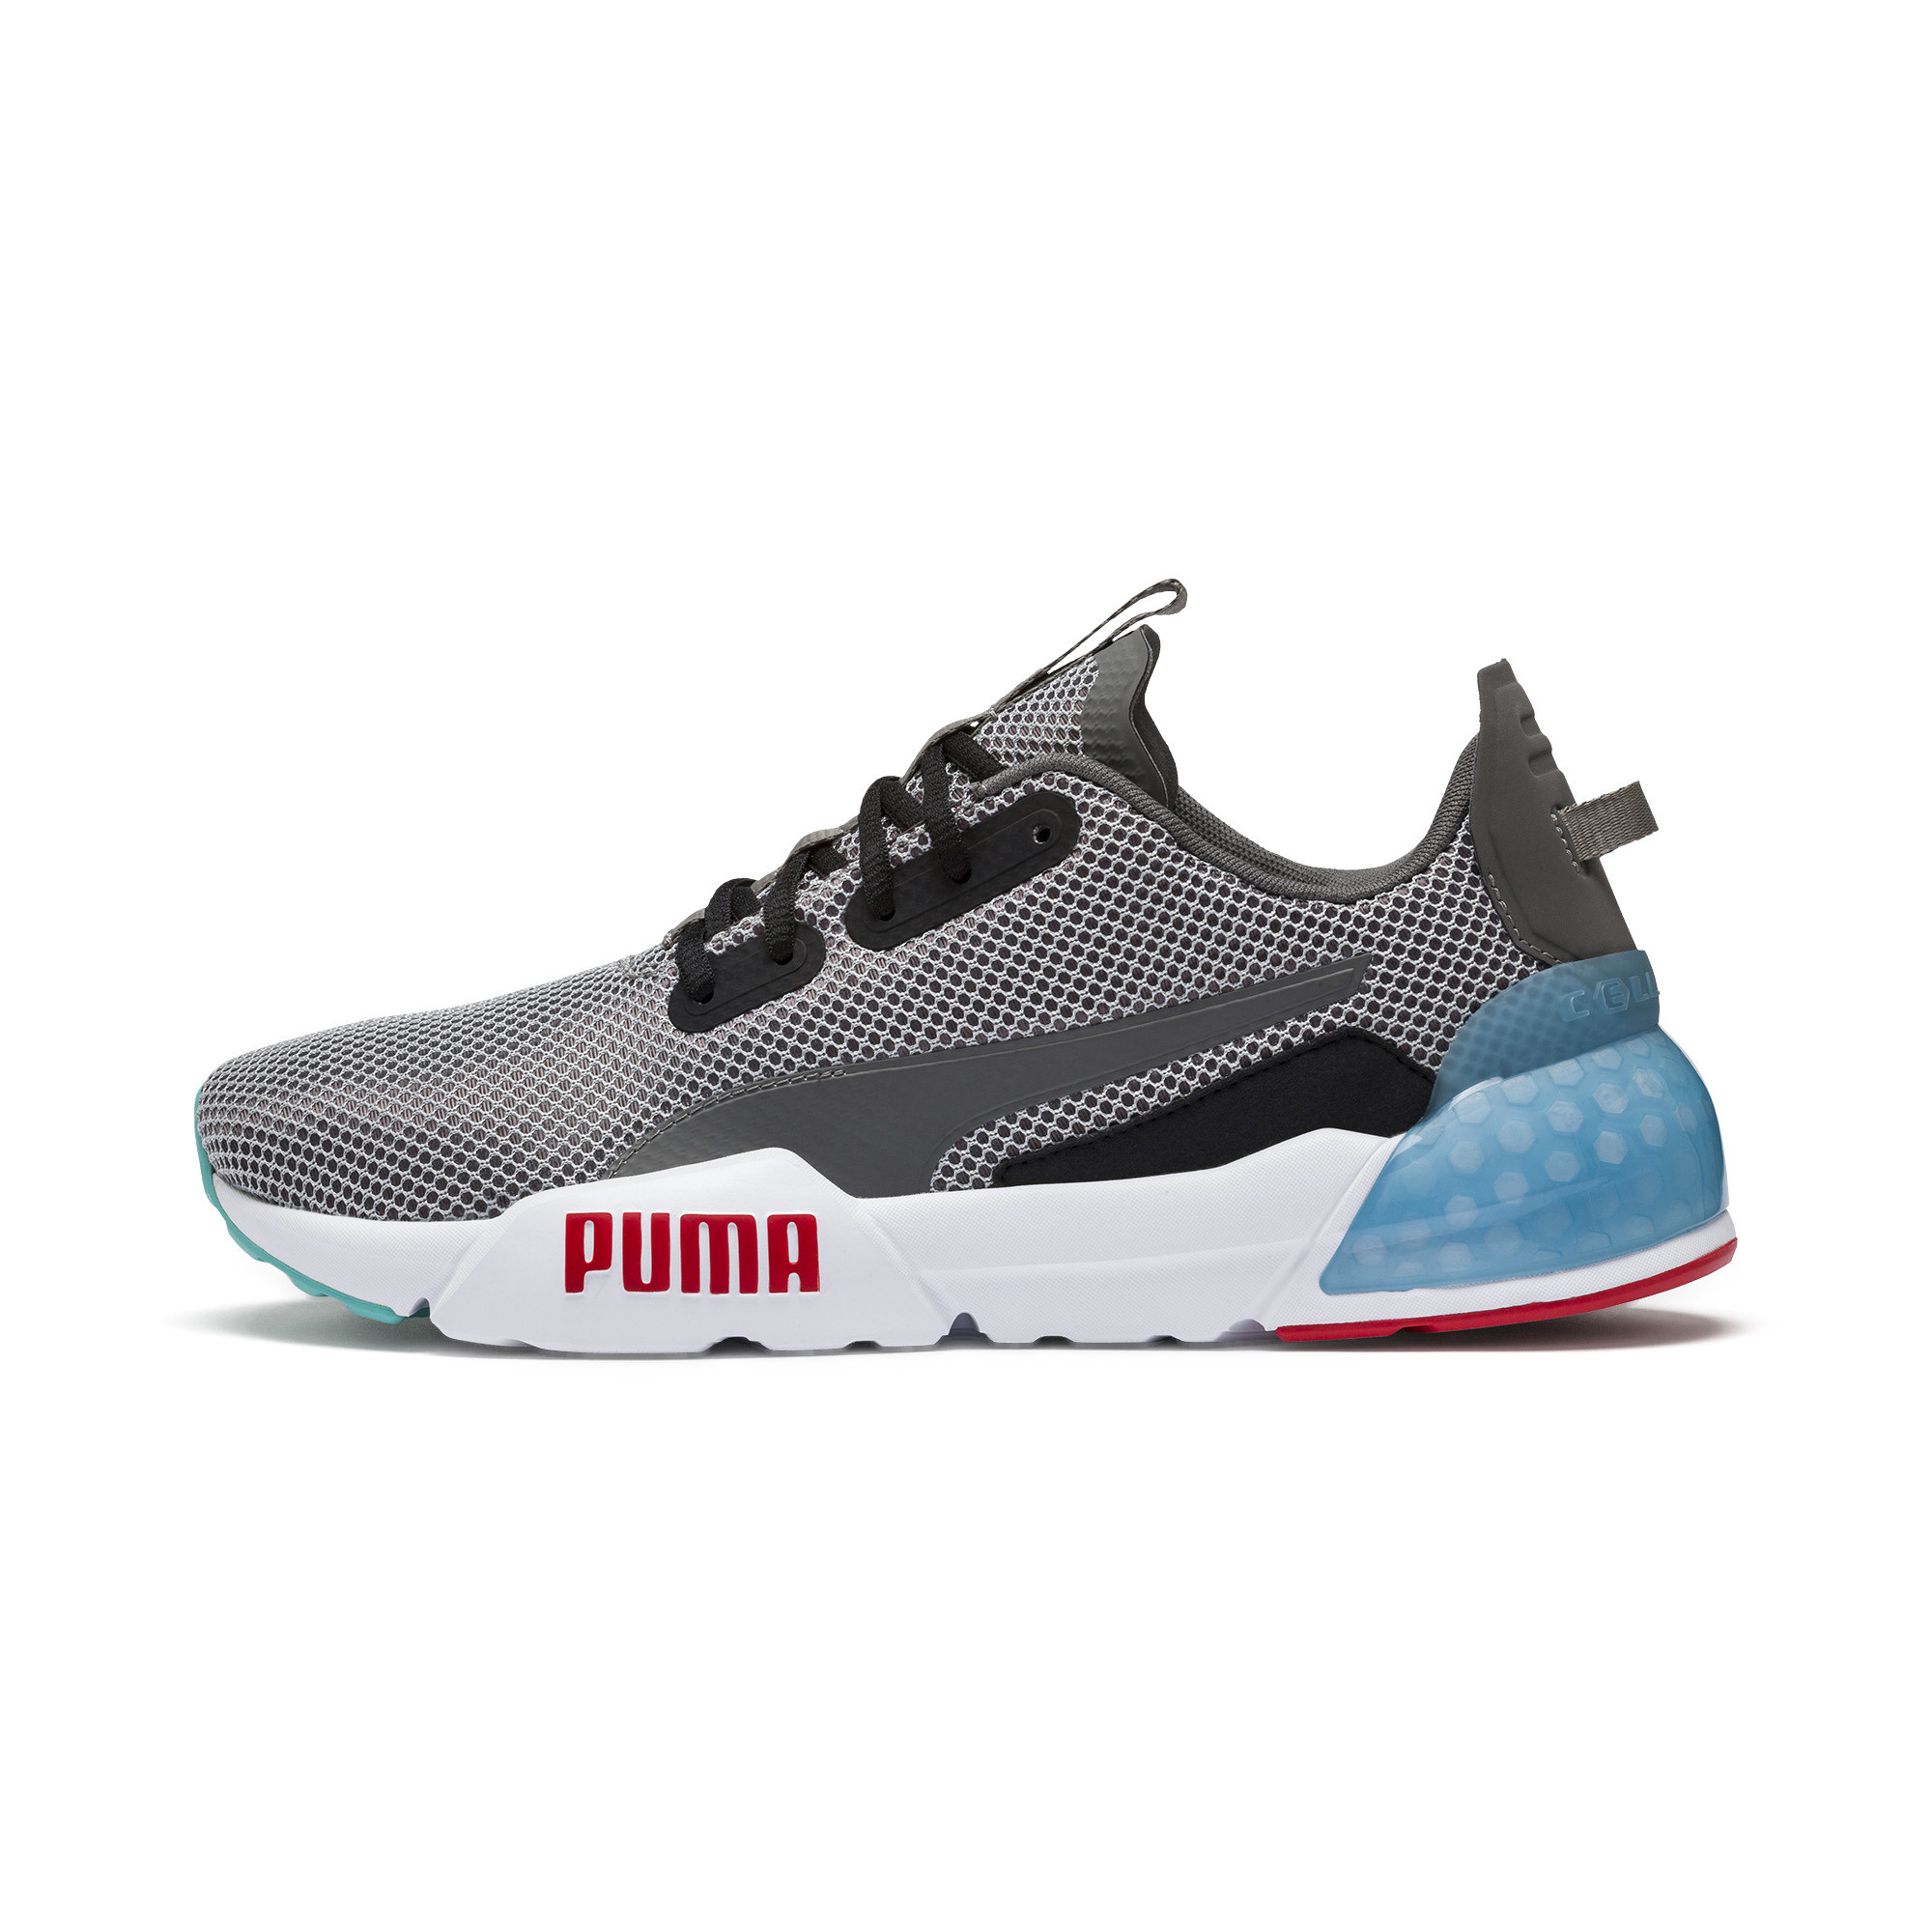 PUMA-Men-039-s-CELL-Phase-Training-Shoes thumbnail 30